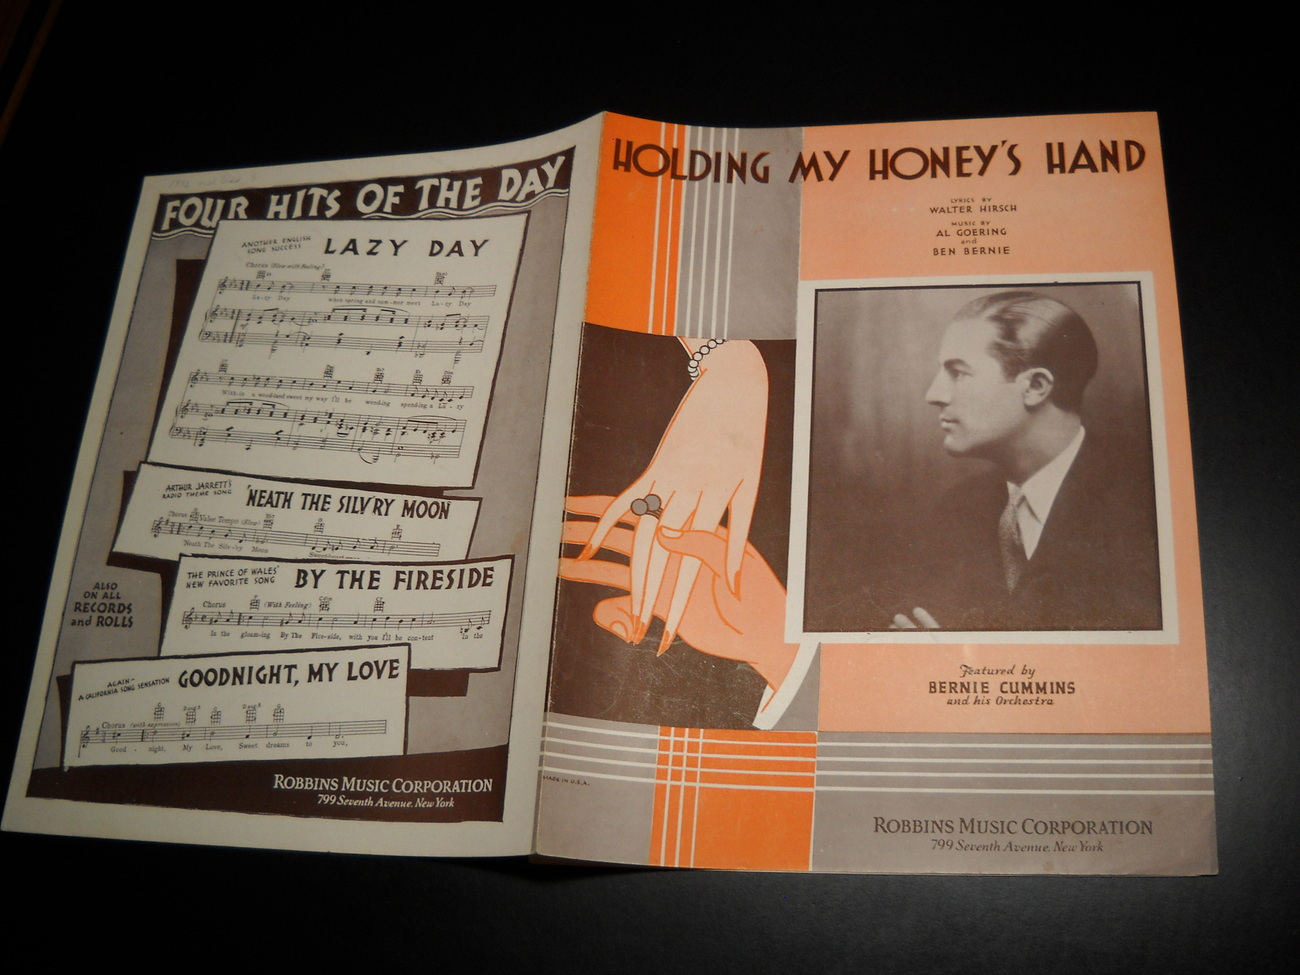 Sheet_music_holding_my_honey_s_hand_bernie_cummins_1932_mgm_robbins_04